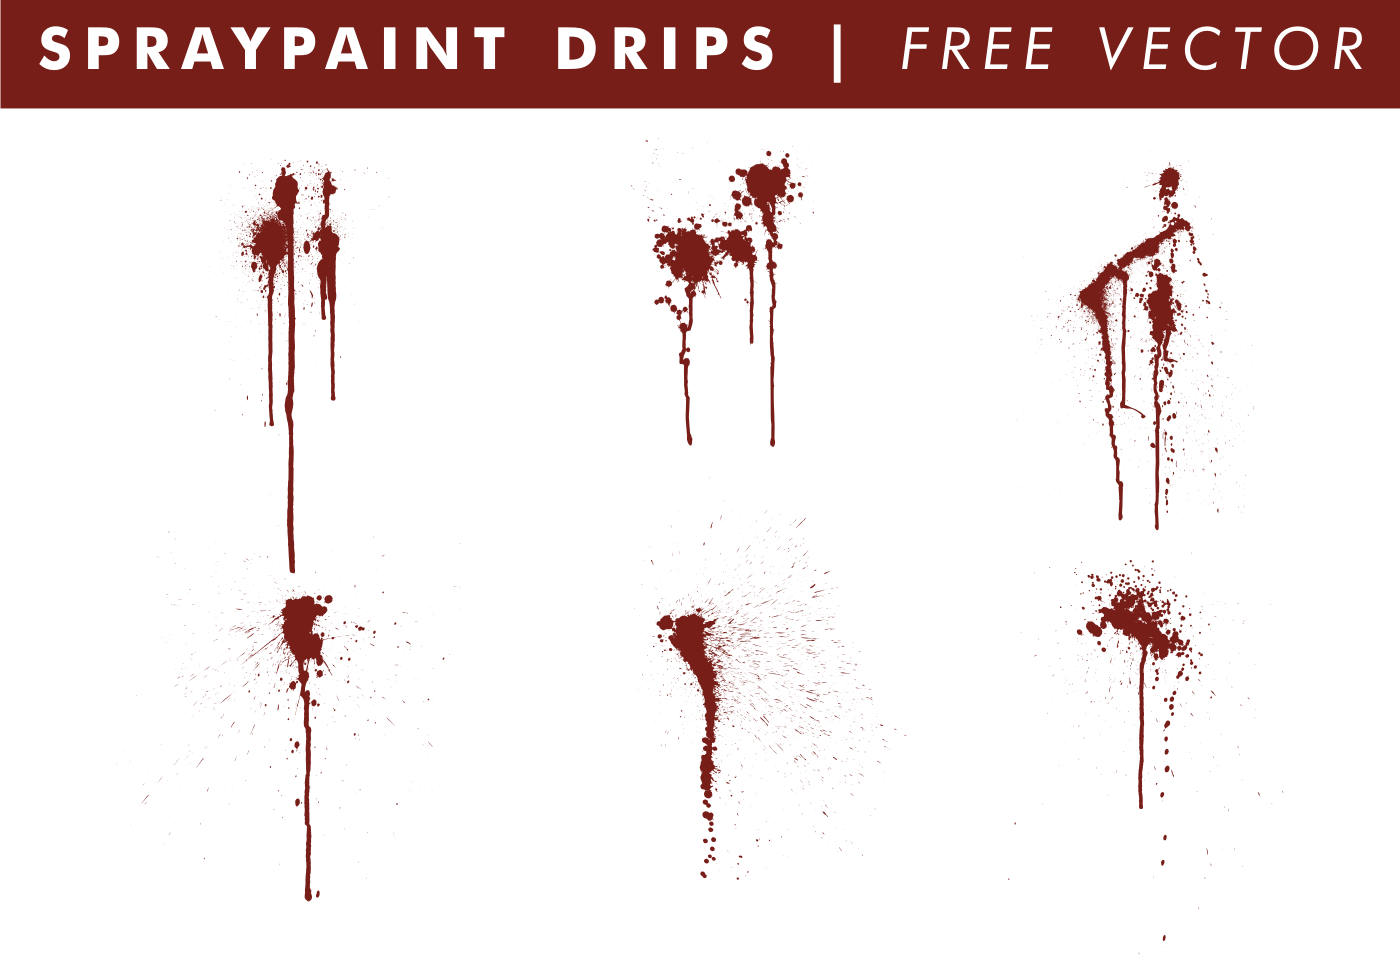 Spraypaint Drips Free Vector Download Free Vector Art Stock Graphics Images